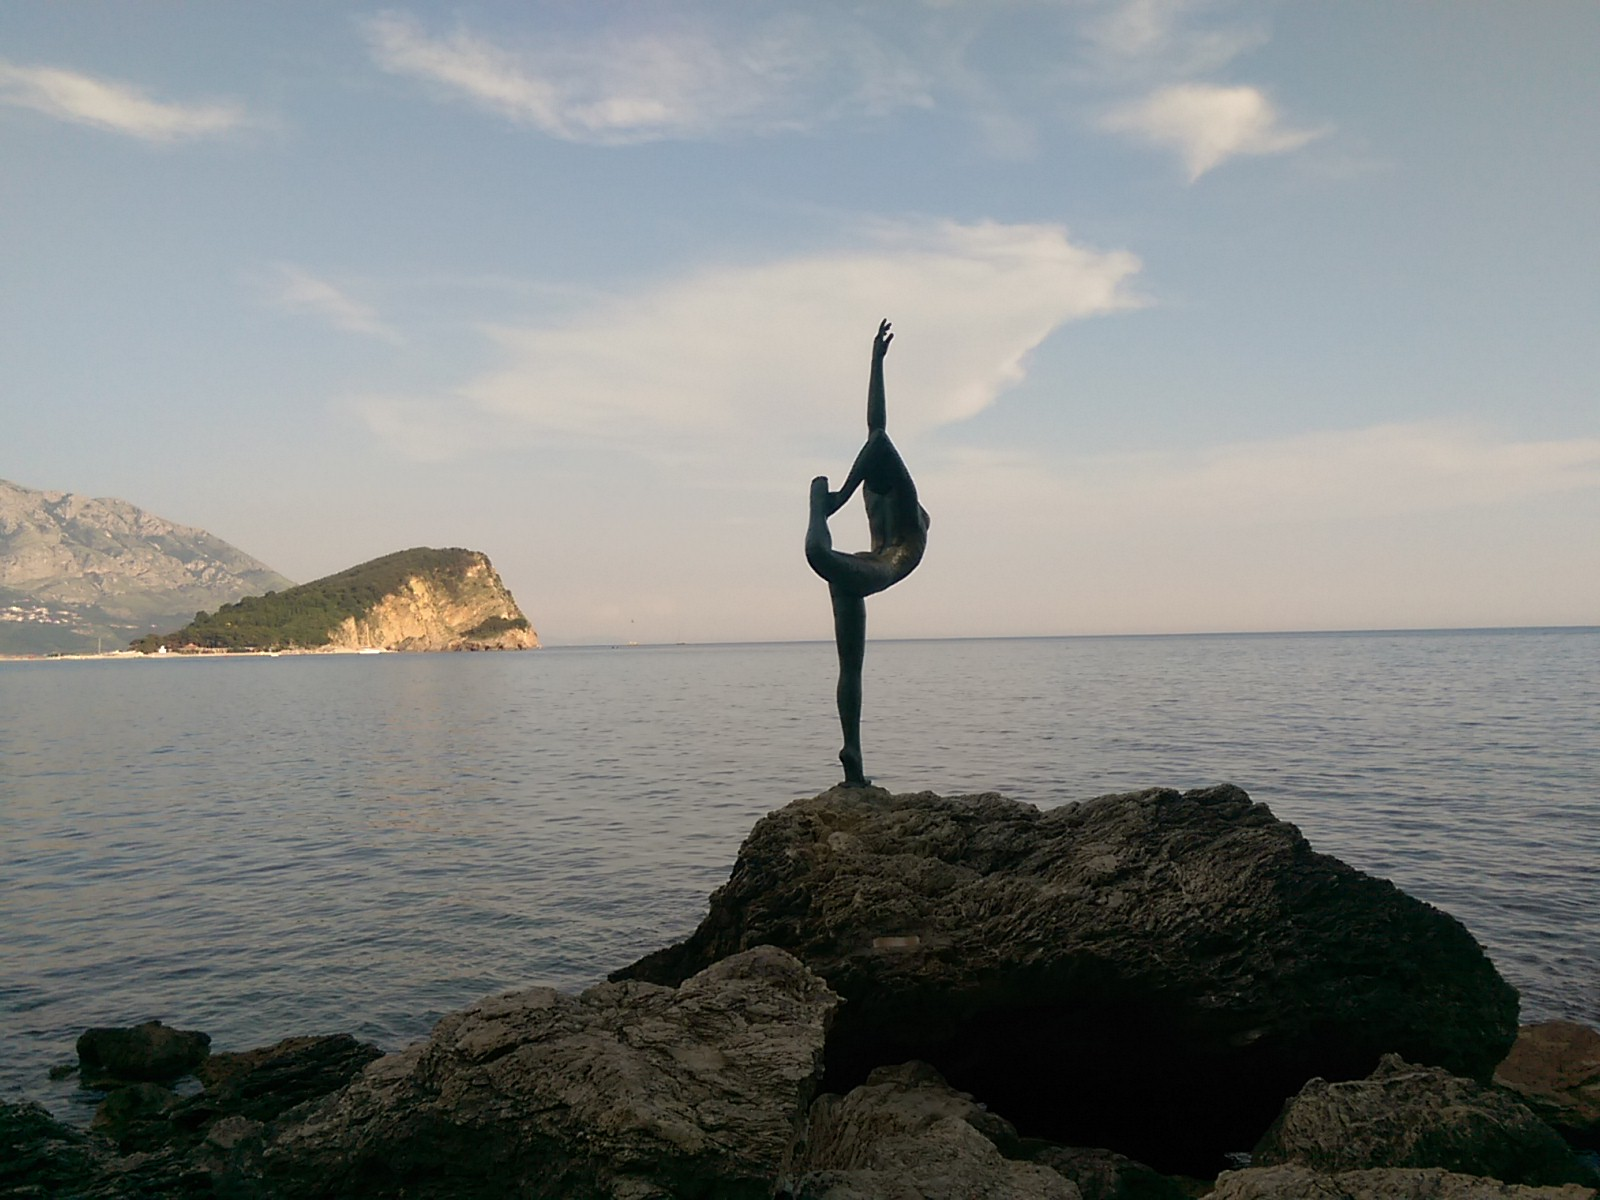 A statue of a woman doing the dancer pose on a rock silhouetted against blue sea and sky with an island to the left